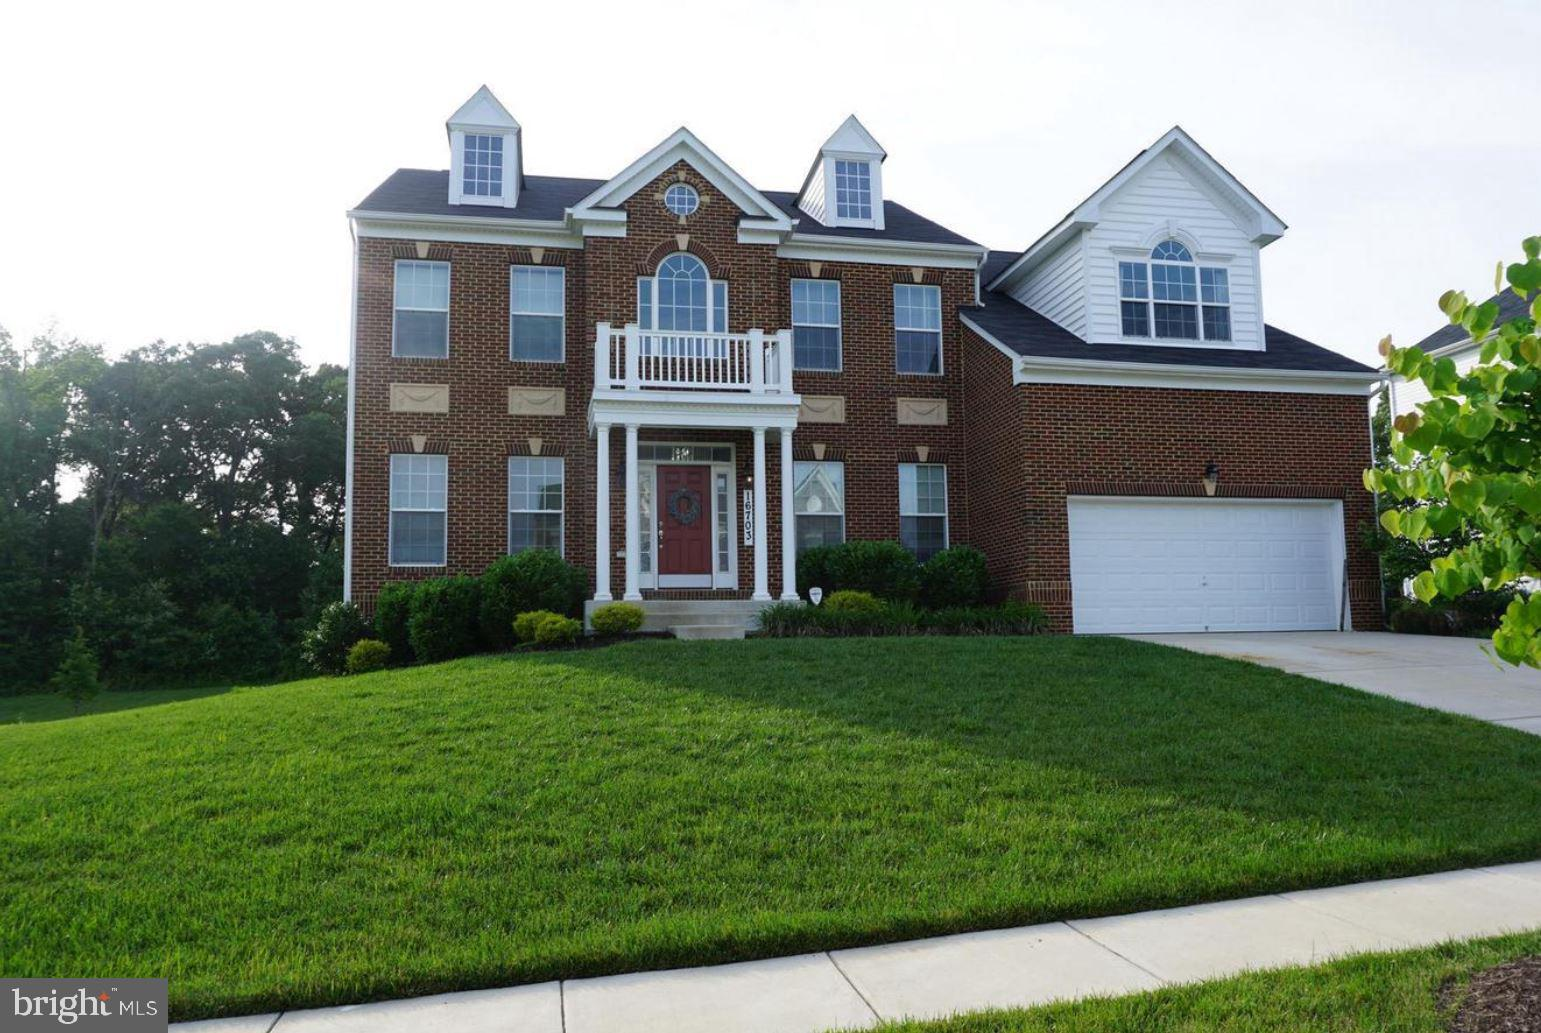 16703 BEALLE HILL FOREST LANE, ACCOKEEK, MD 20607